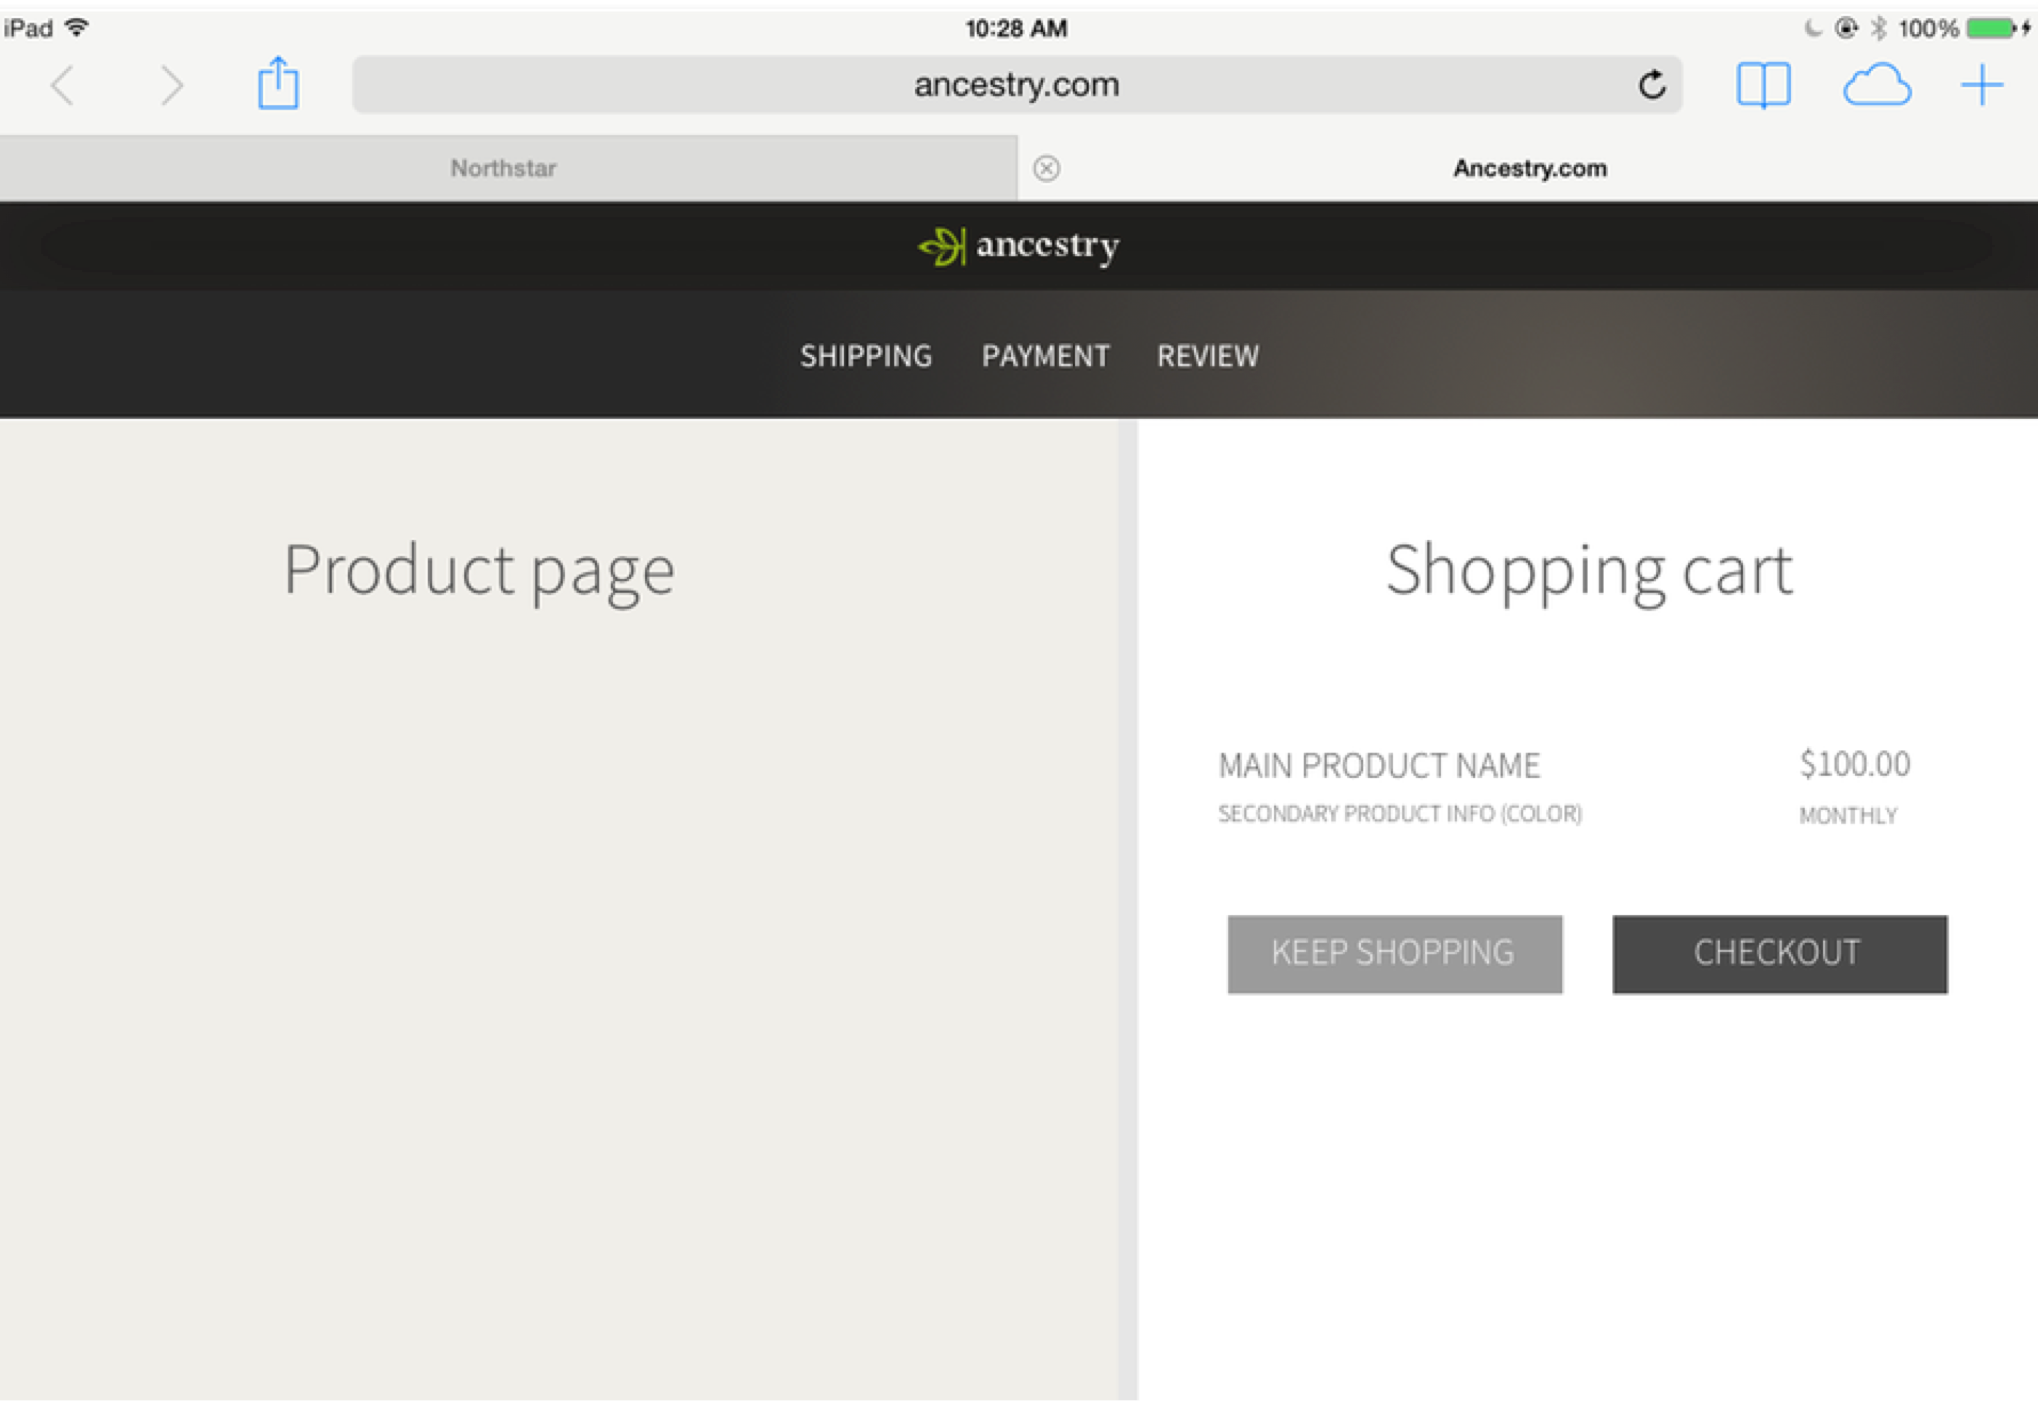 version B, sidebar - Explored allowing users to check out on top of product pages, so it was a more connected experience and users could pay in-context